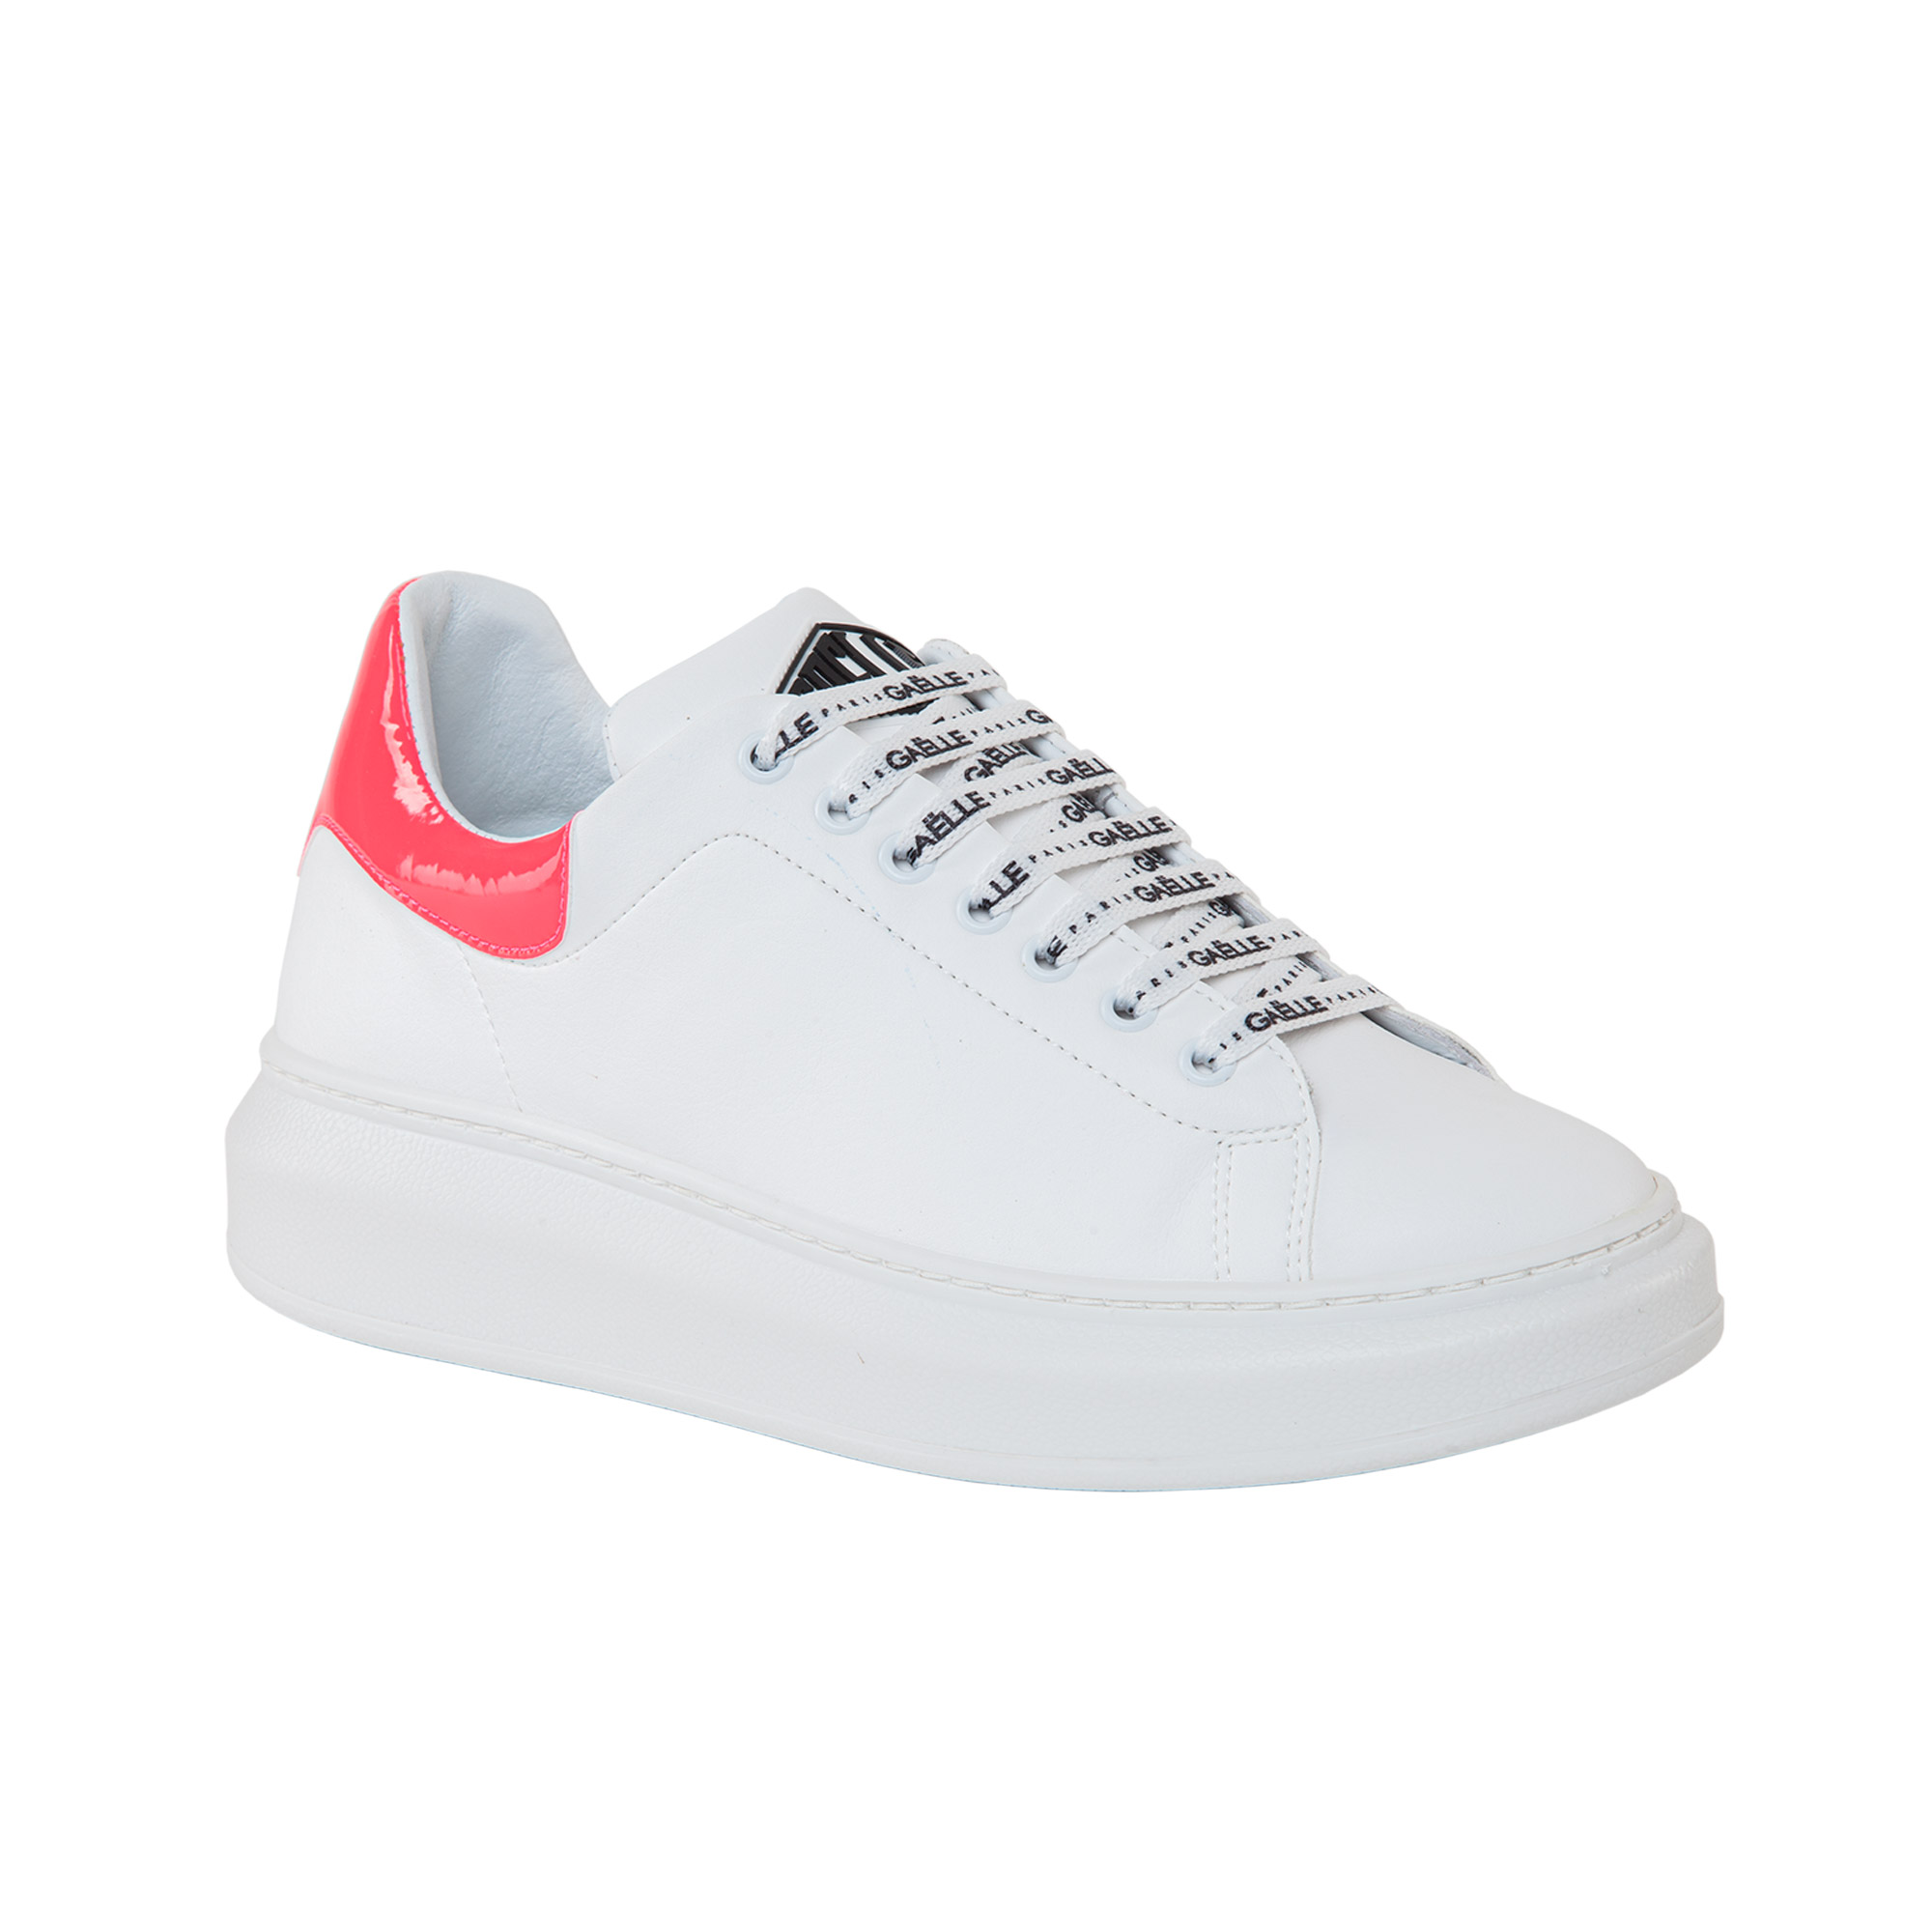 SNEAKERS - GBDA1303 - GAELLE PARIS